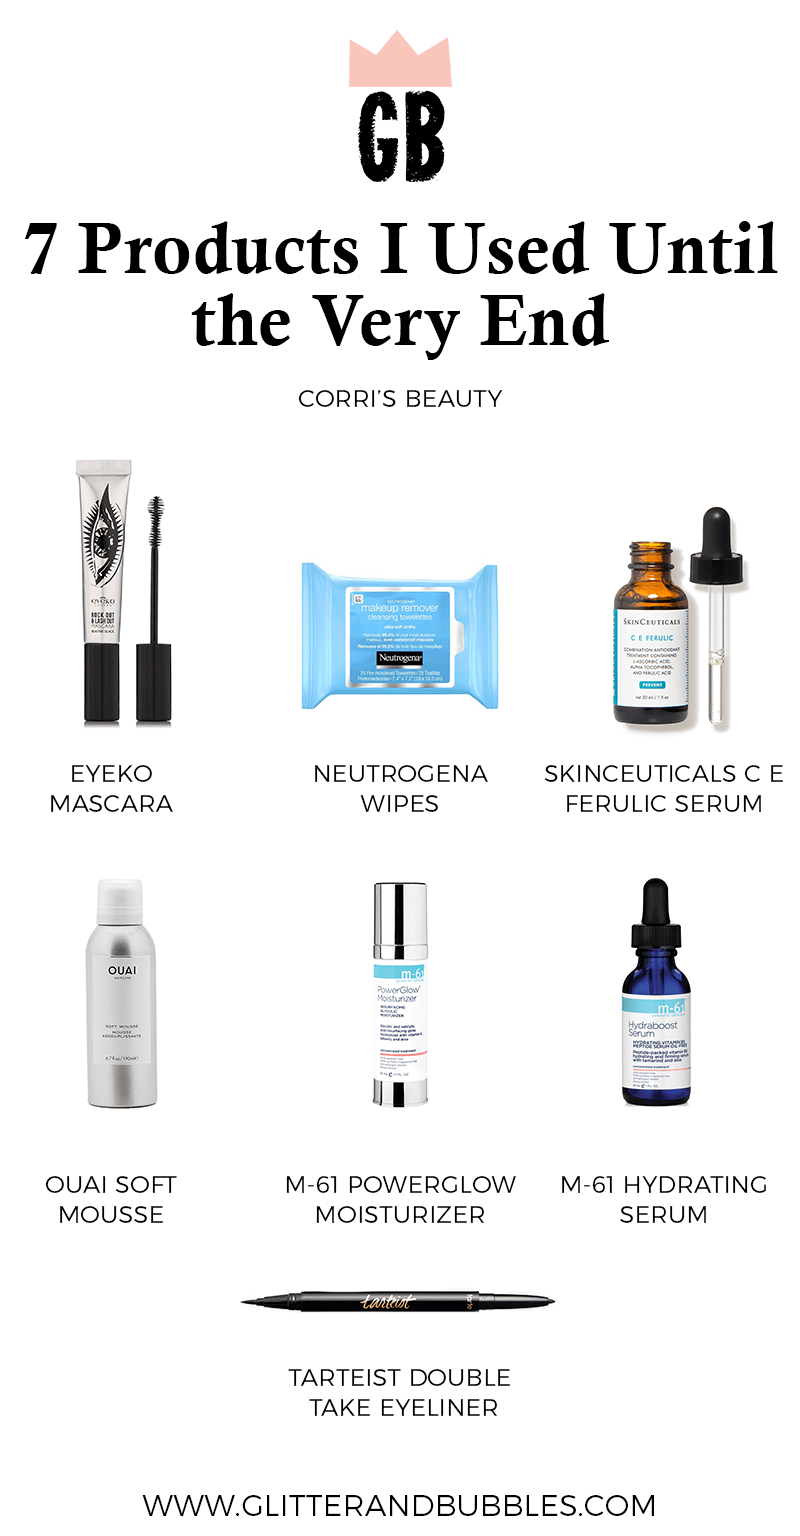 Seven beauty products Corri McFadden used until the very end.